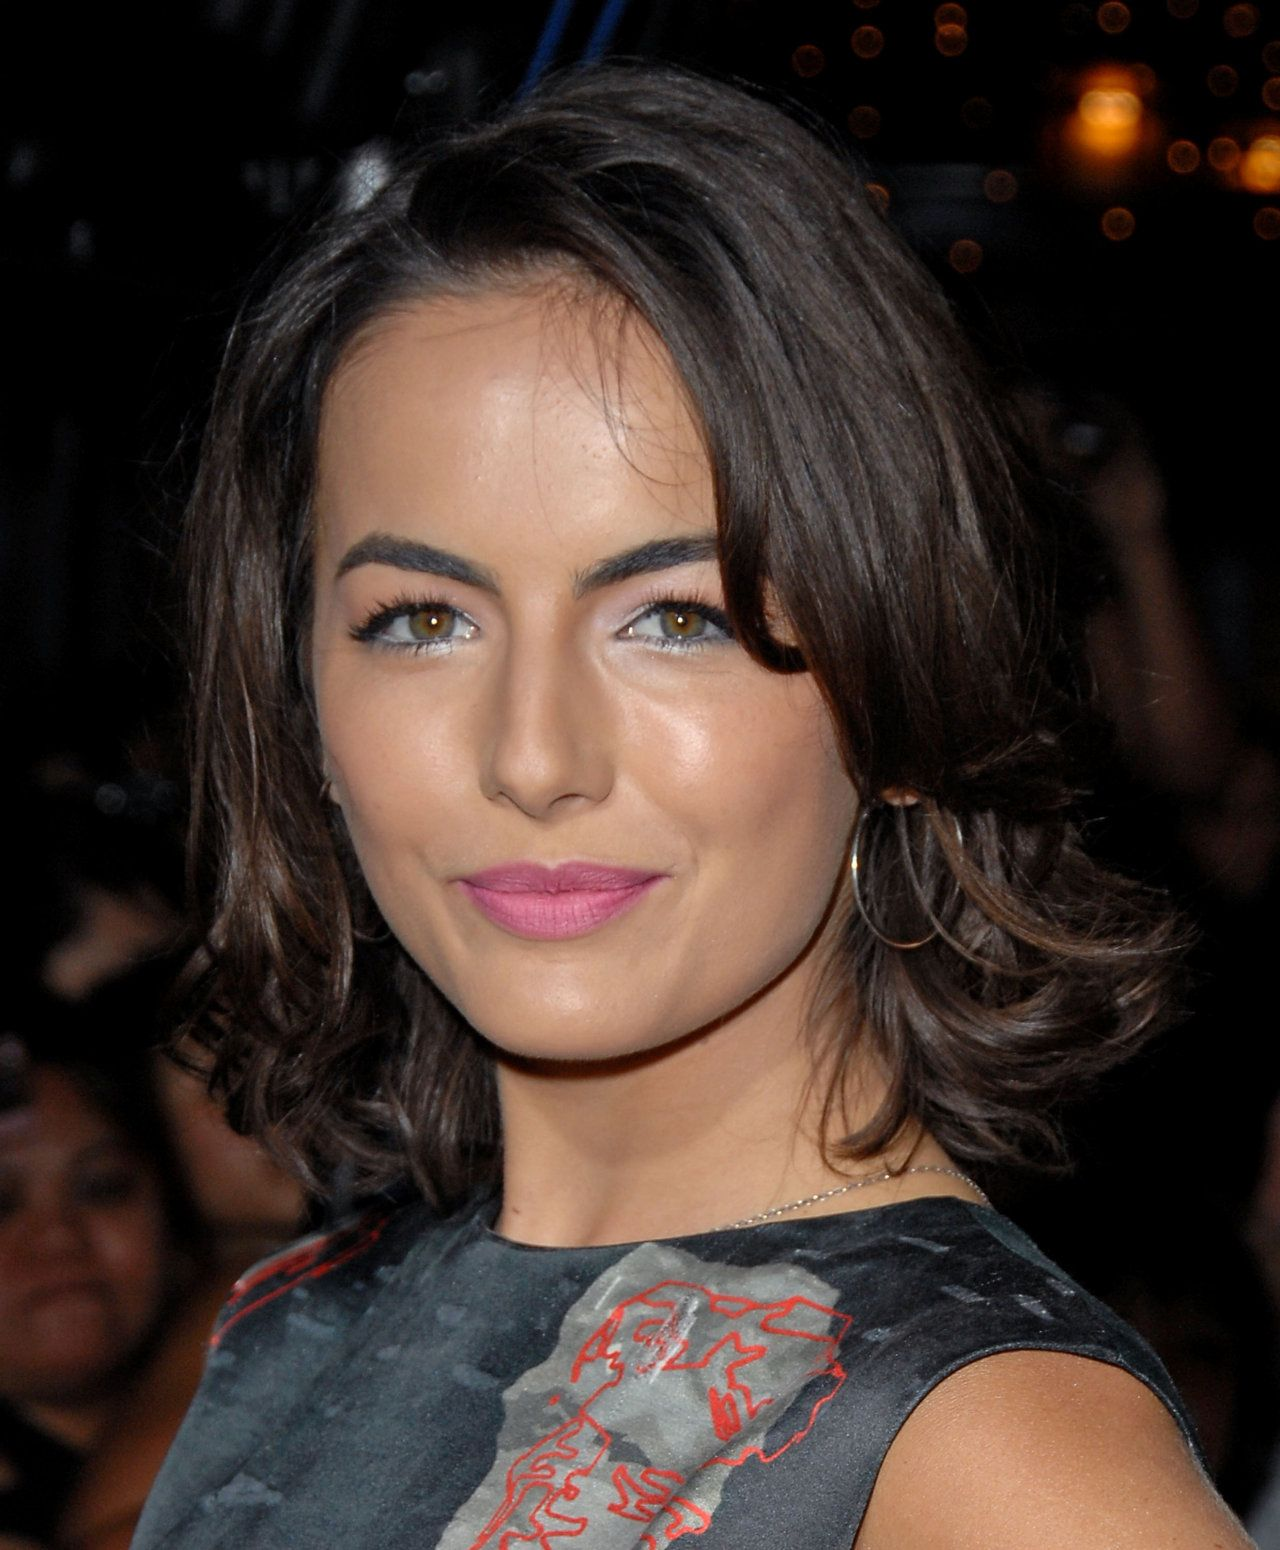 ICloud Camilla Belle naked (82 foto and video), Sexy, Is a cute, Selfie, legs 2015